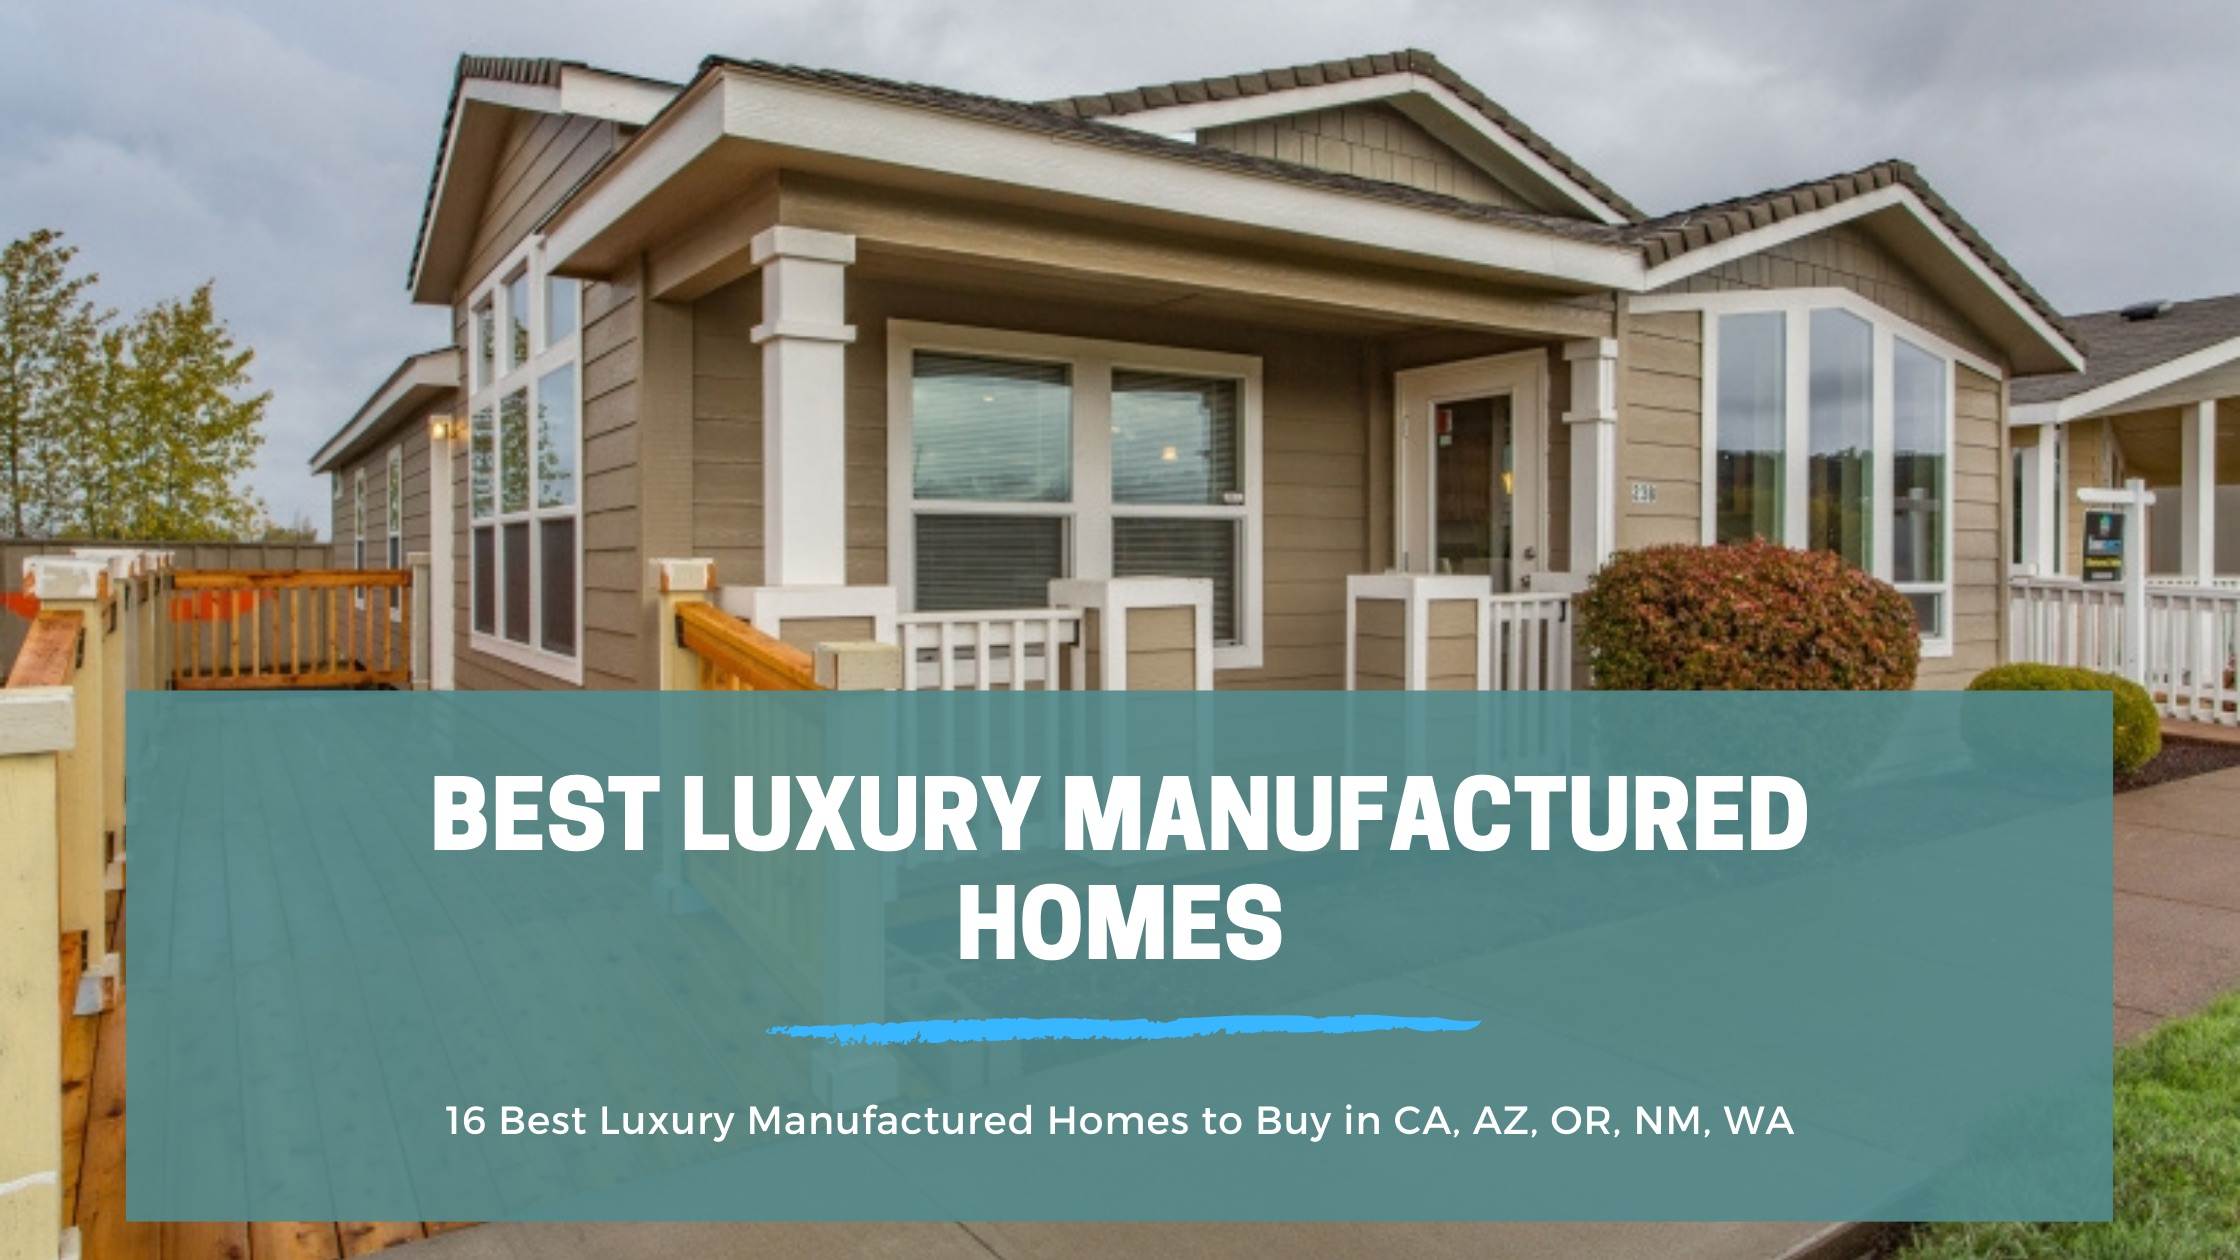 16 Best Luxury Manufactured Homes to Buy in CA, AZ, OR, NM, WA | Homes Direct | Homes Direct